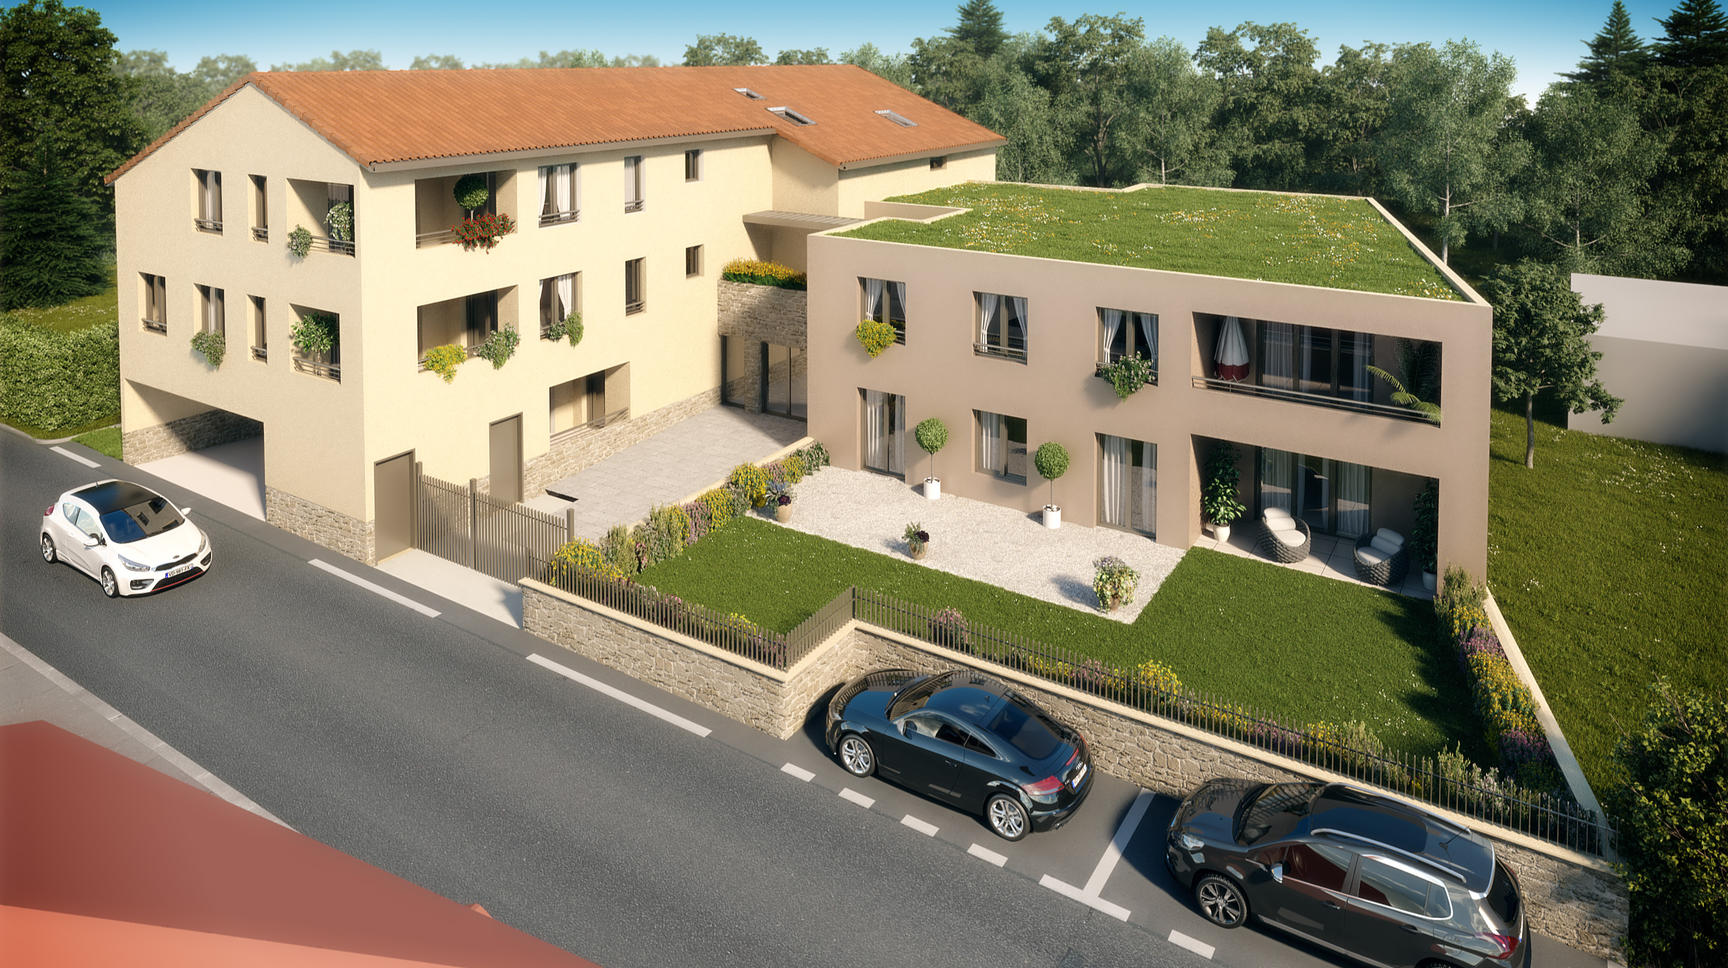 APPARTEMENT 71M2 NEUF CENTRE VILLAGE COTE OUEST - Dardilly